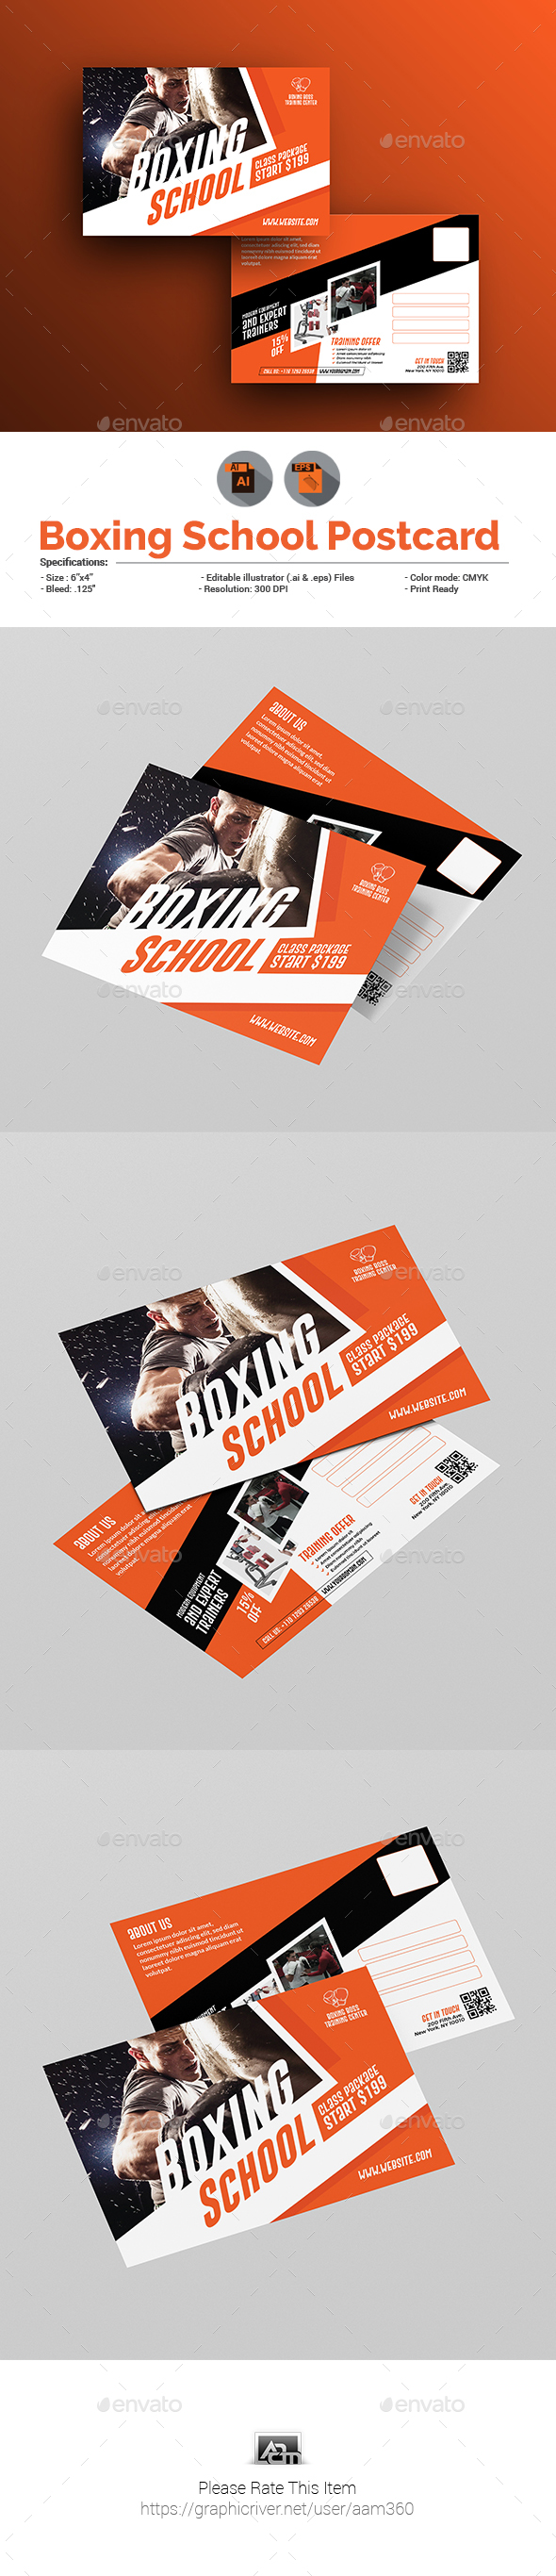 Boxing School Postcard Template - Cards & Invites Print Templates